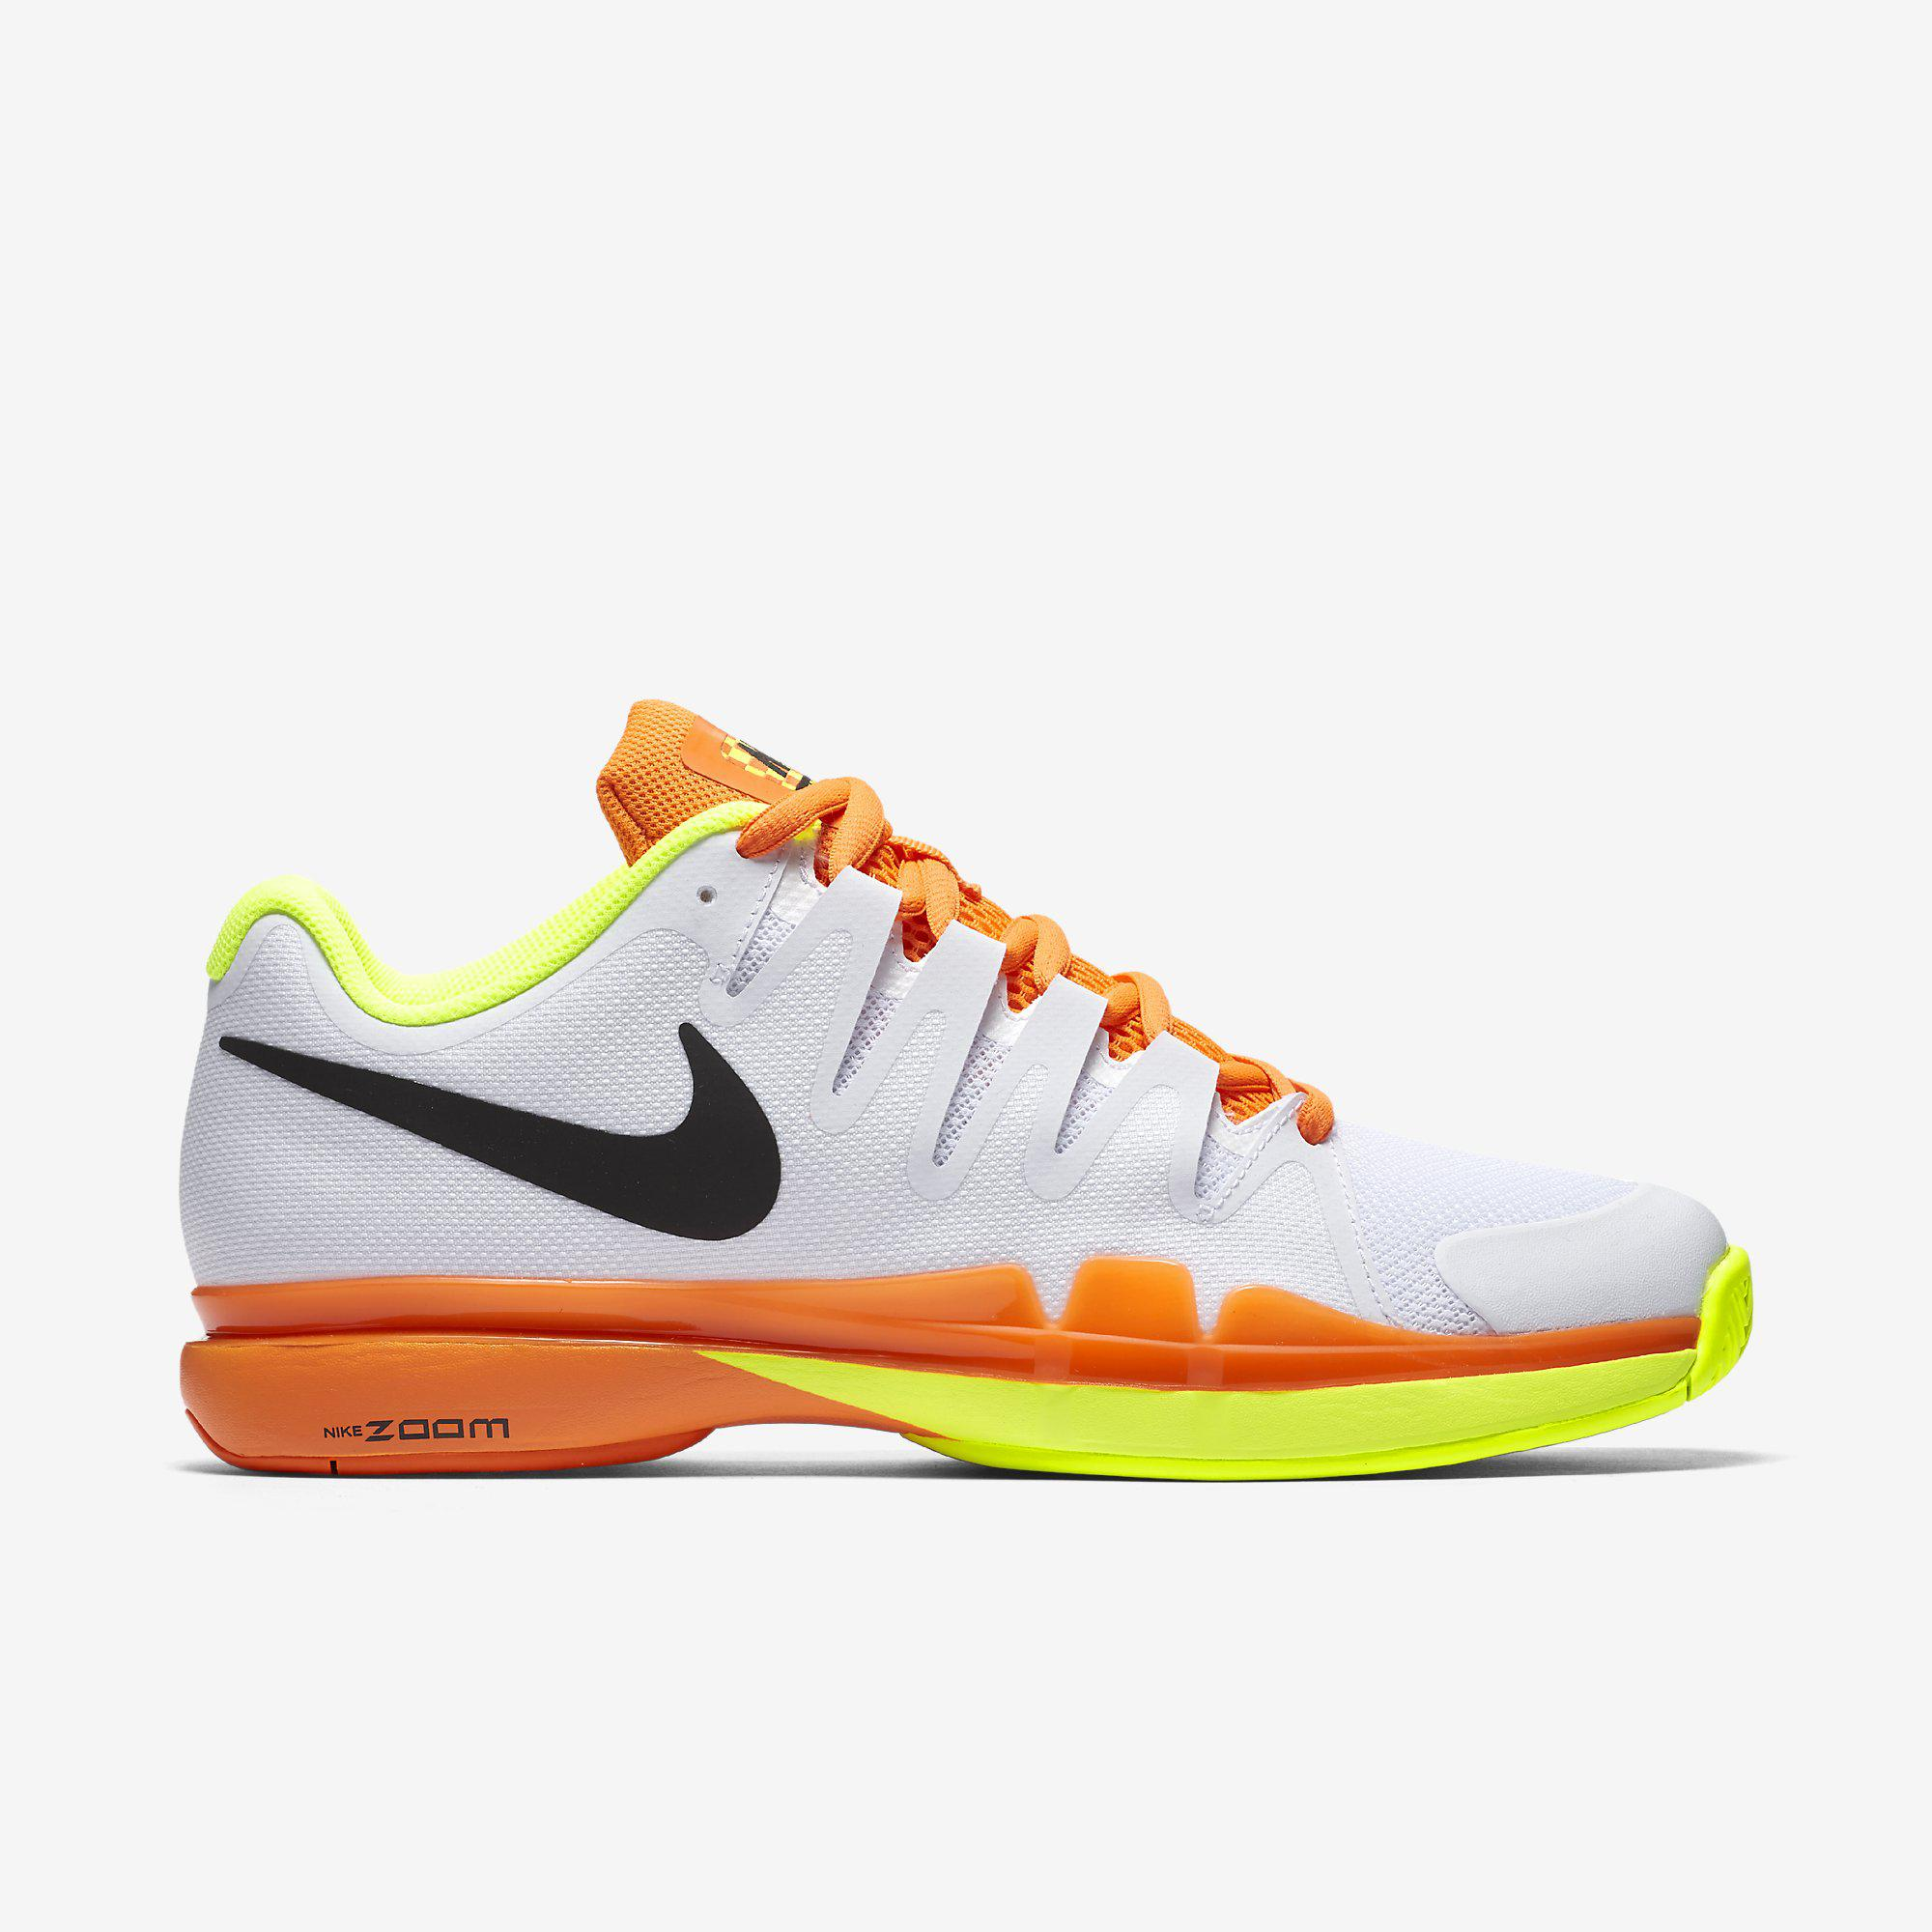 buy online e85da ec1b8 Nike Mens Zoom Vapor 9.5 Tour Tennis Shoes - White Orange Volt -  Tennisnuts.com